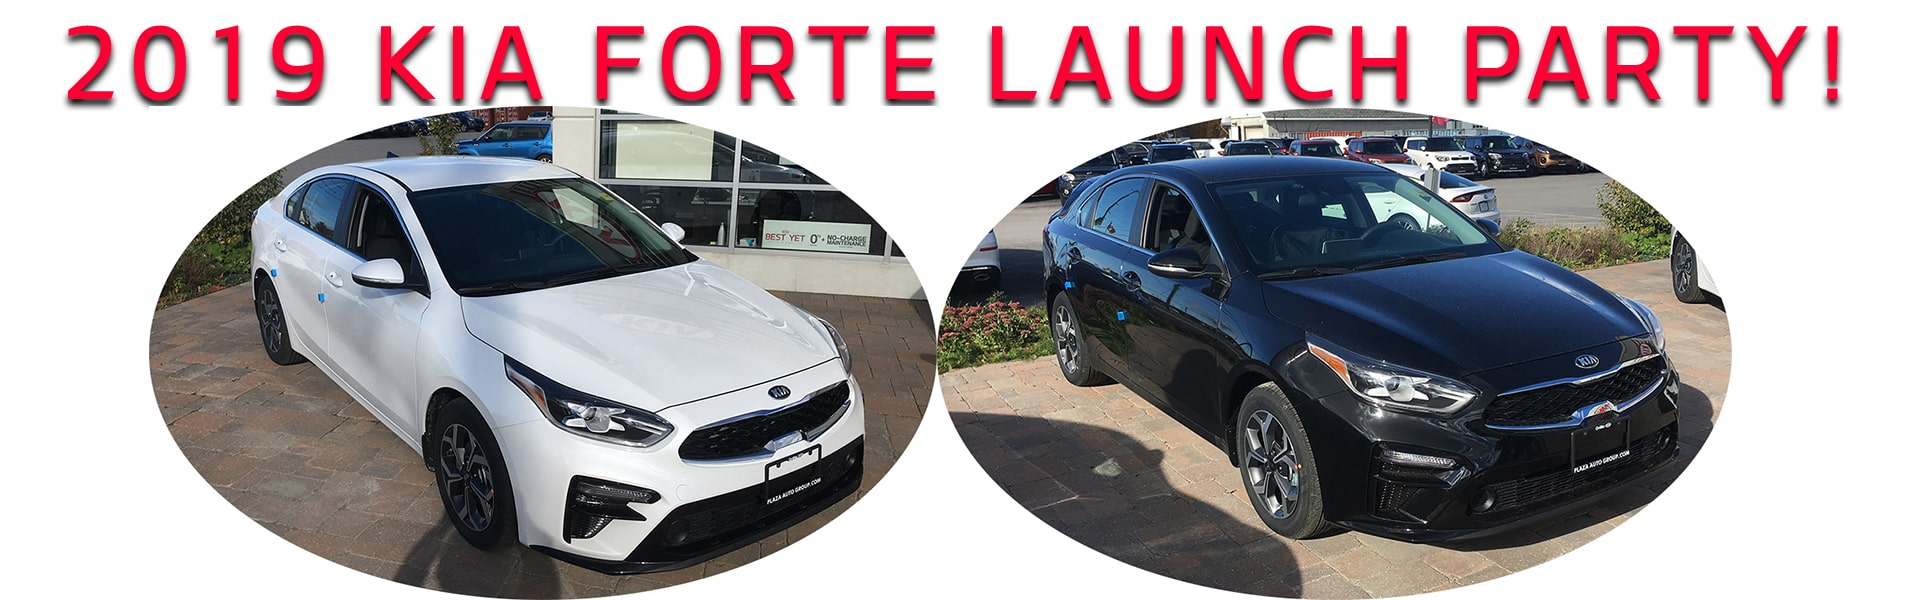 2019 Forte Launch Party